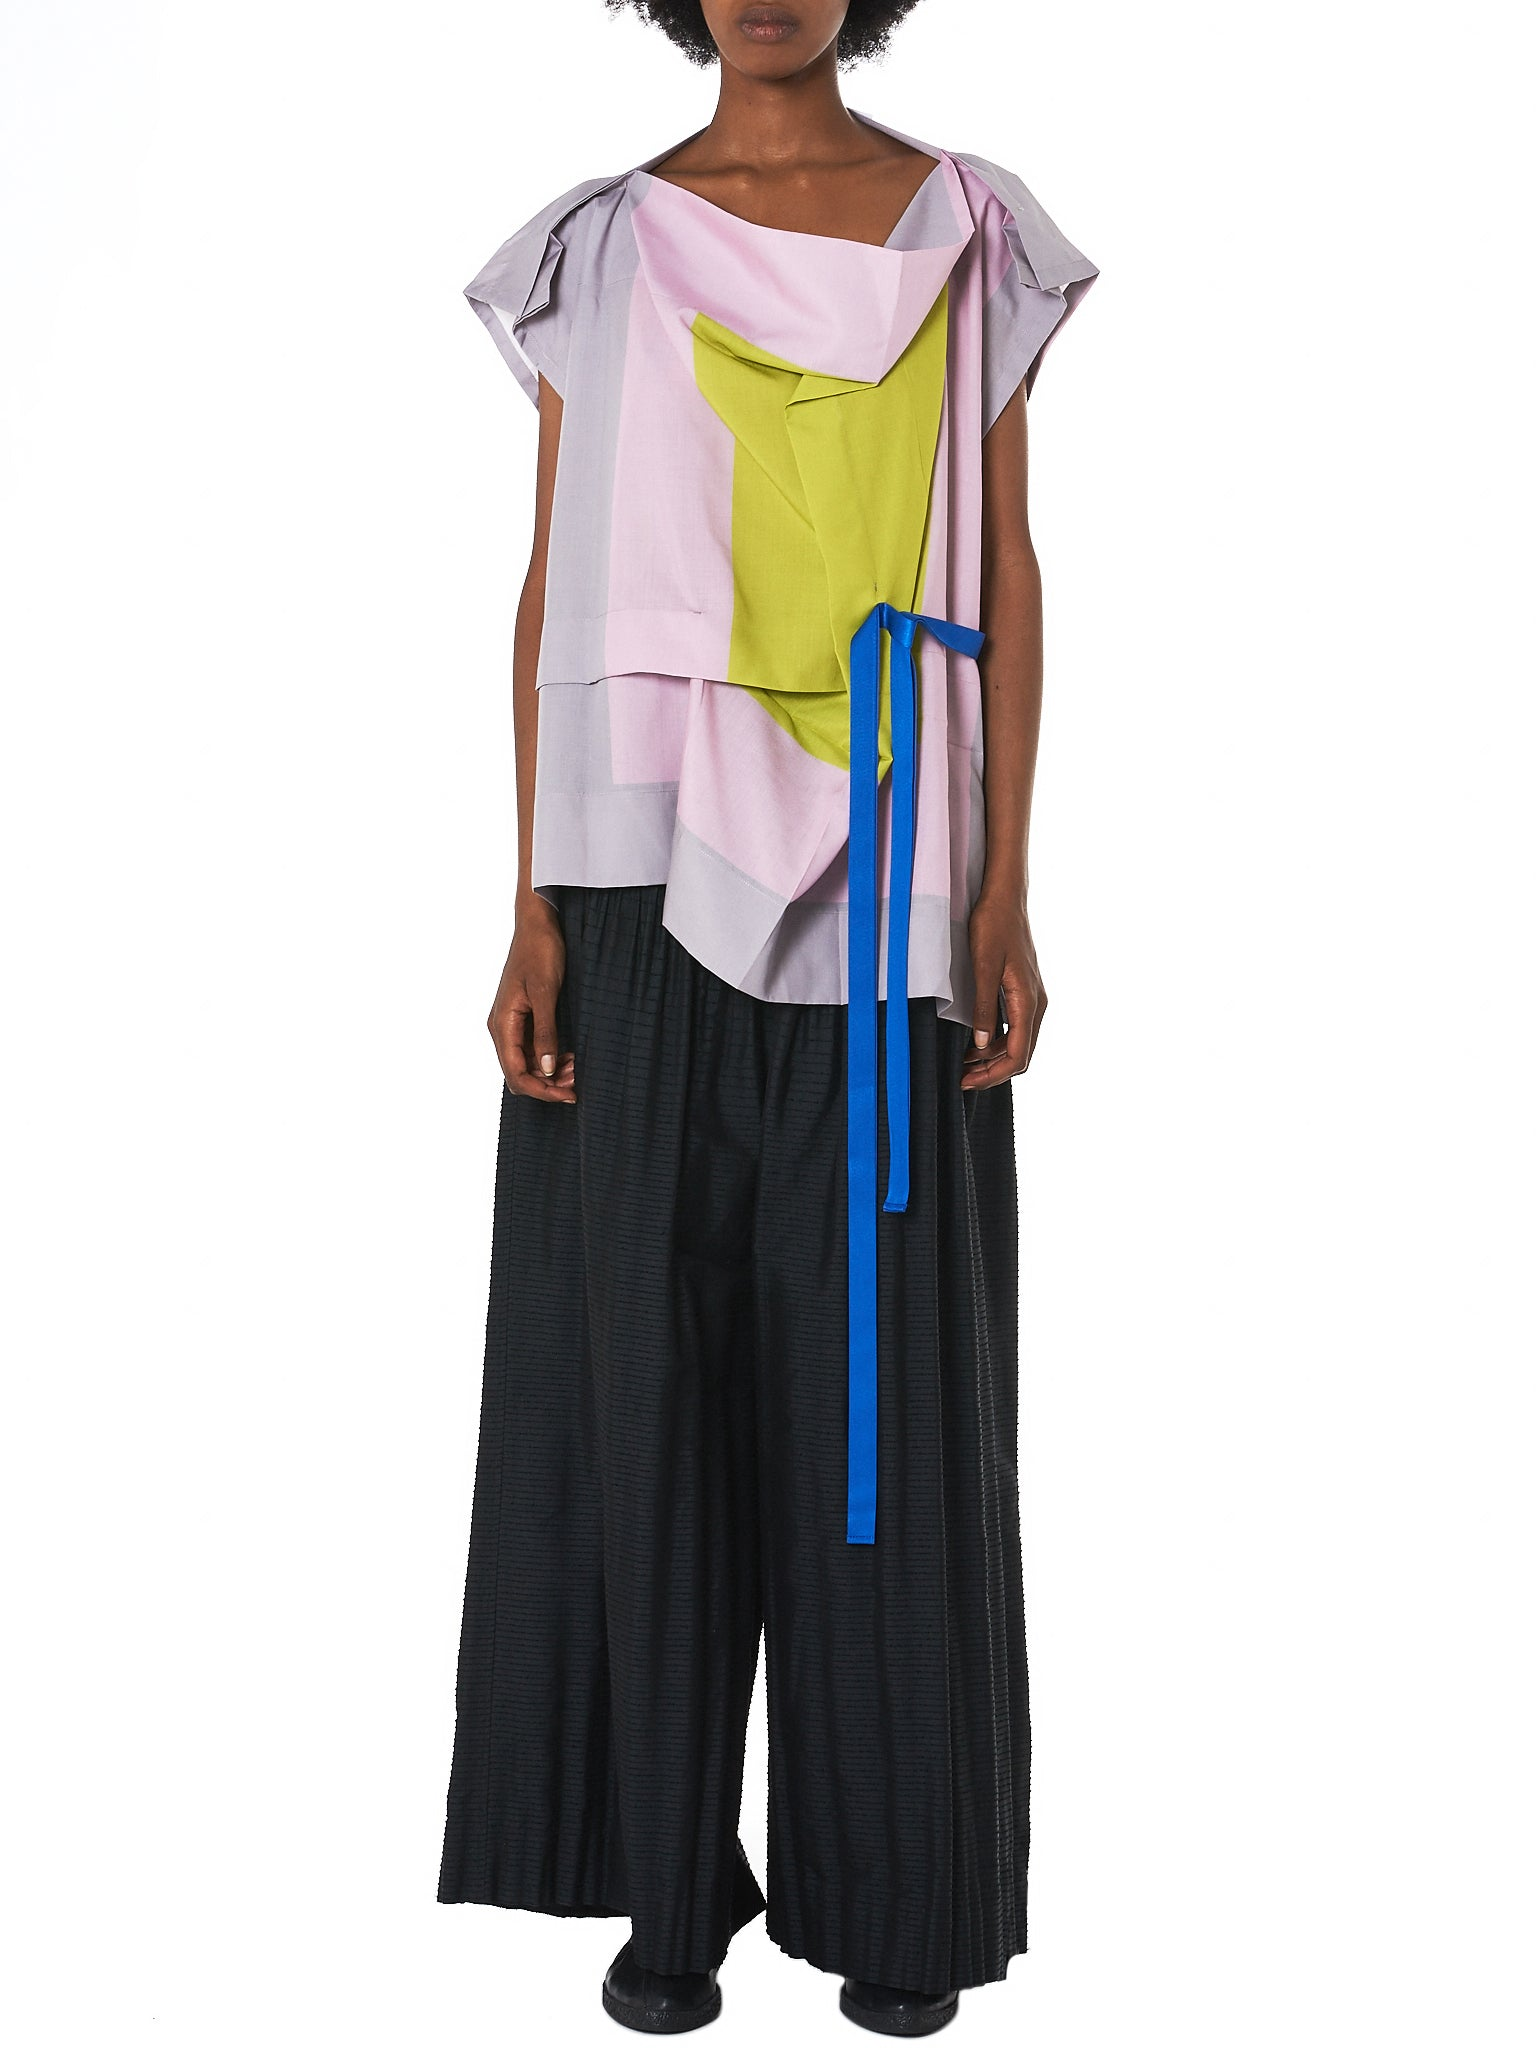 Draped Colorblock Top (IL86FJ351-26)